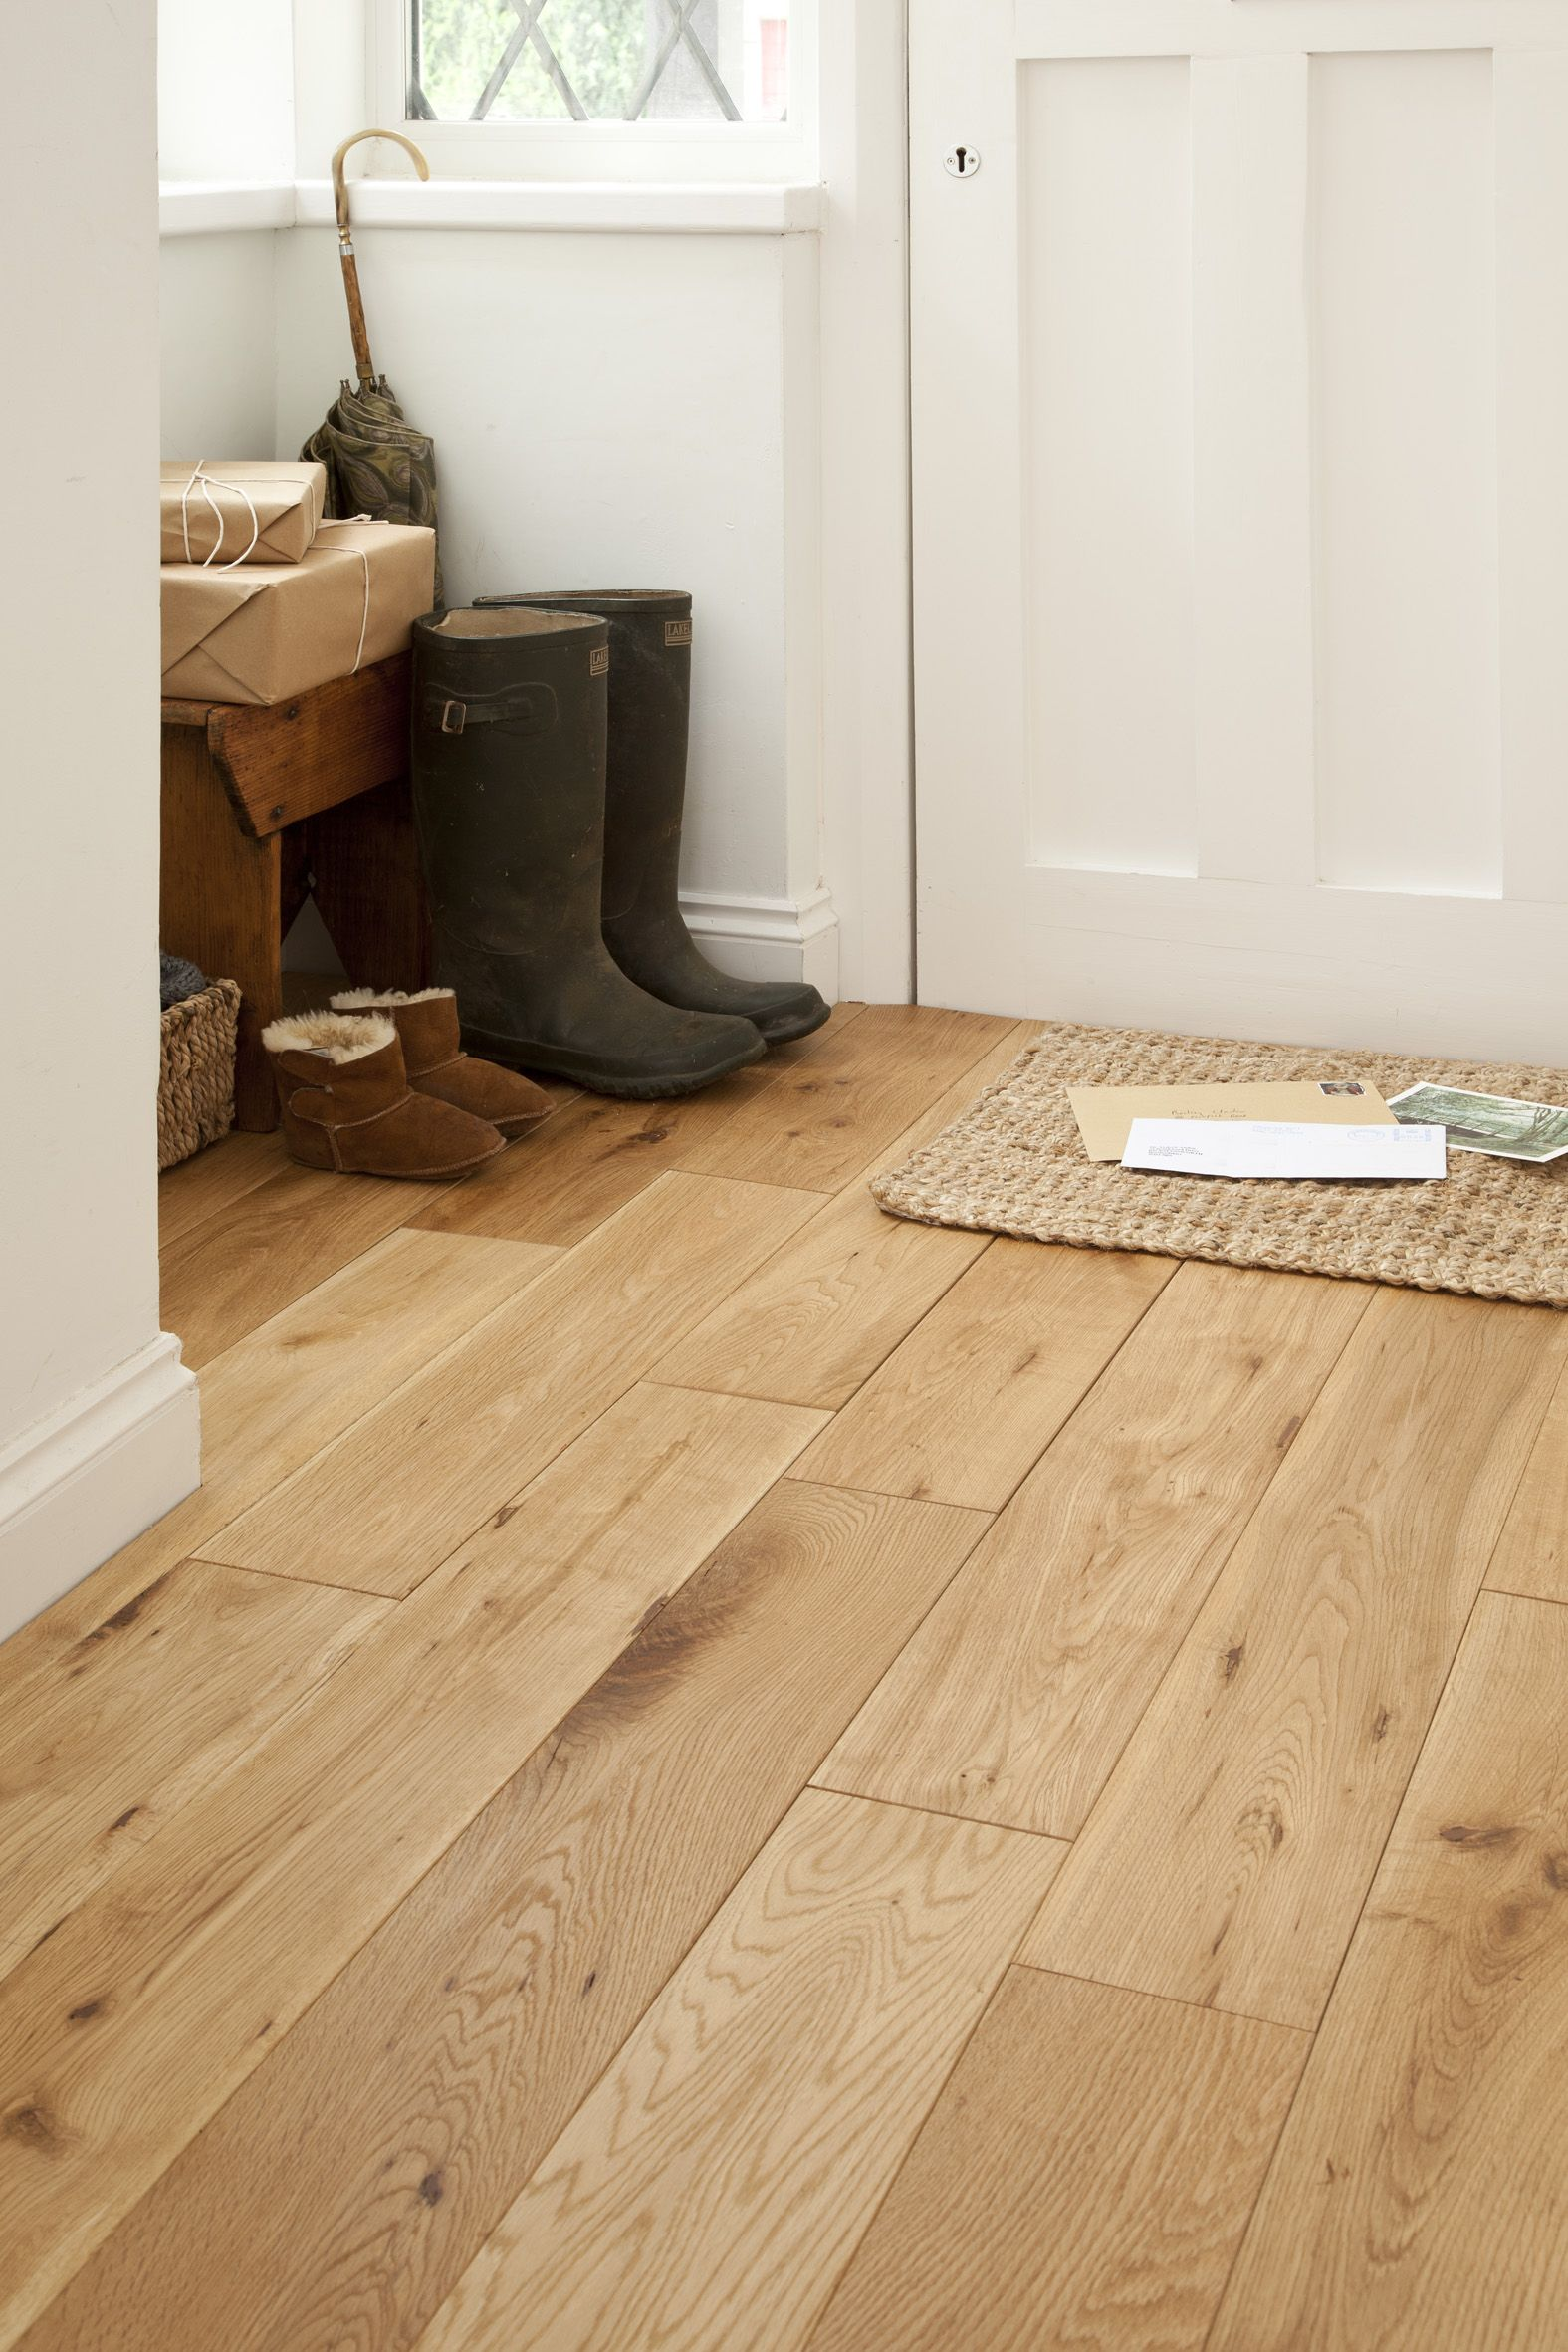 Beautifully Warm Solid Oak Flooring Quite Like This Very Similar To What We Had In Our Apartment More